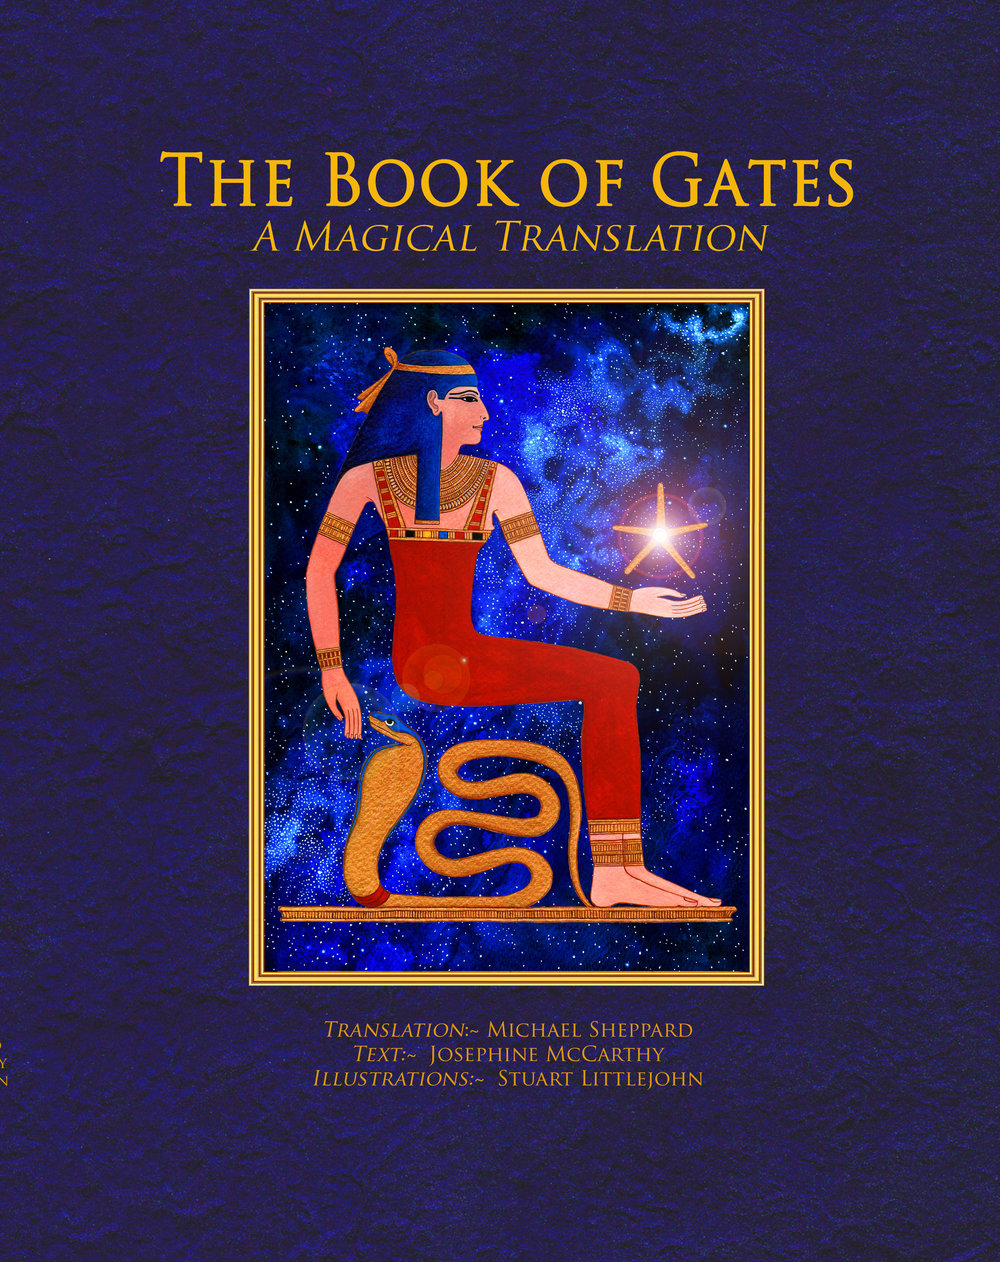 NEW BOOK OF GATES COVER.jpg